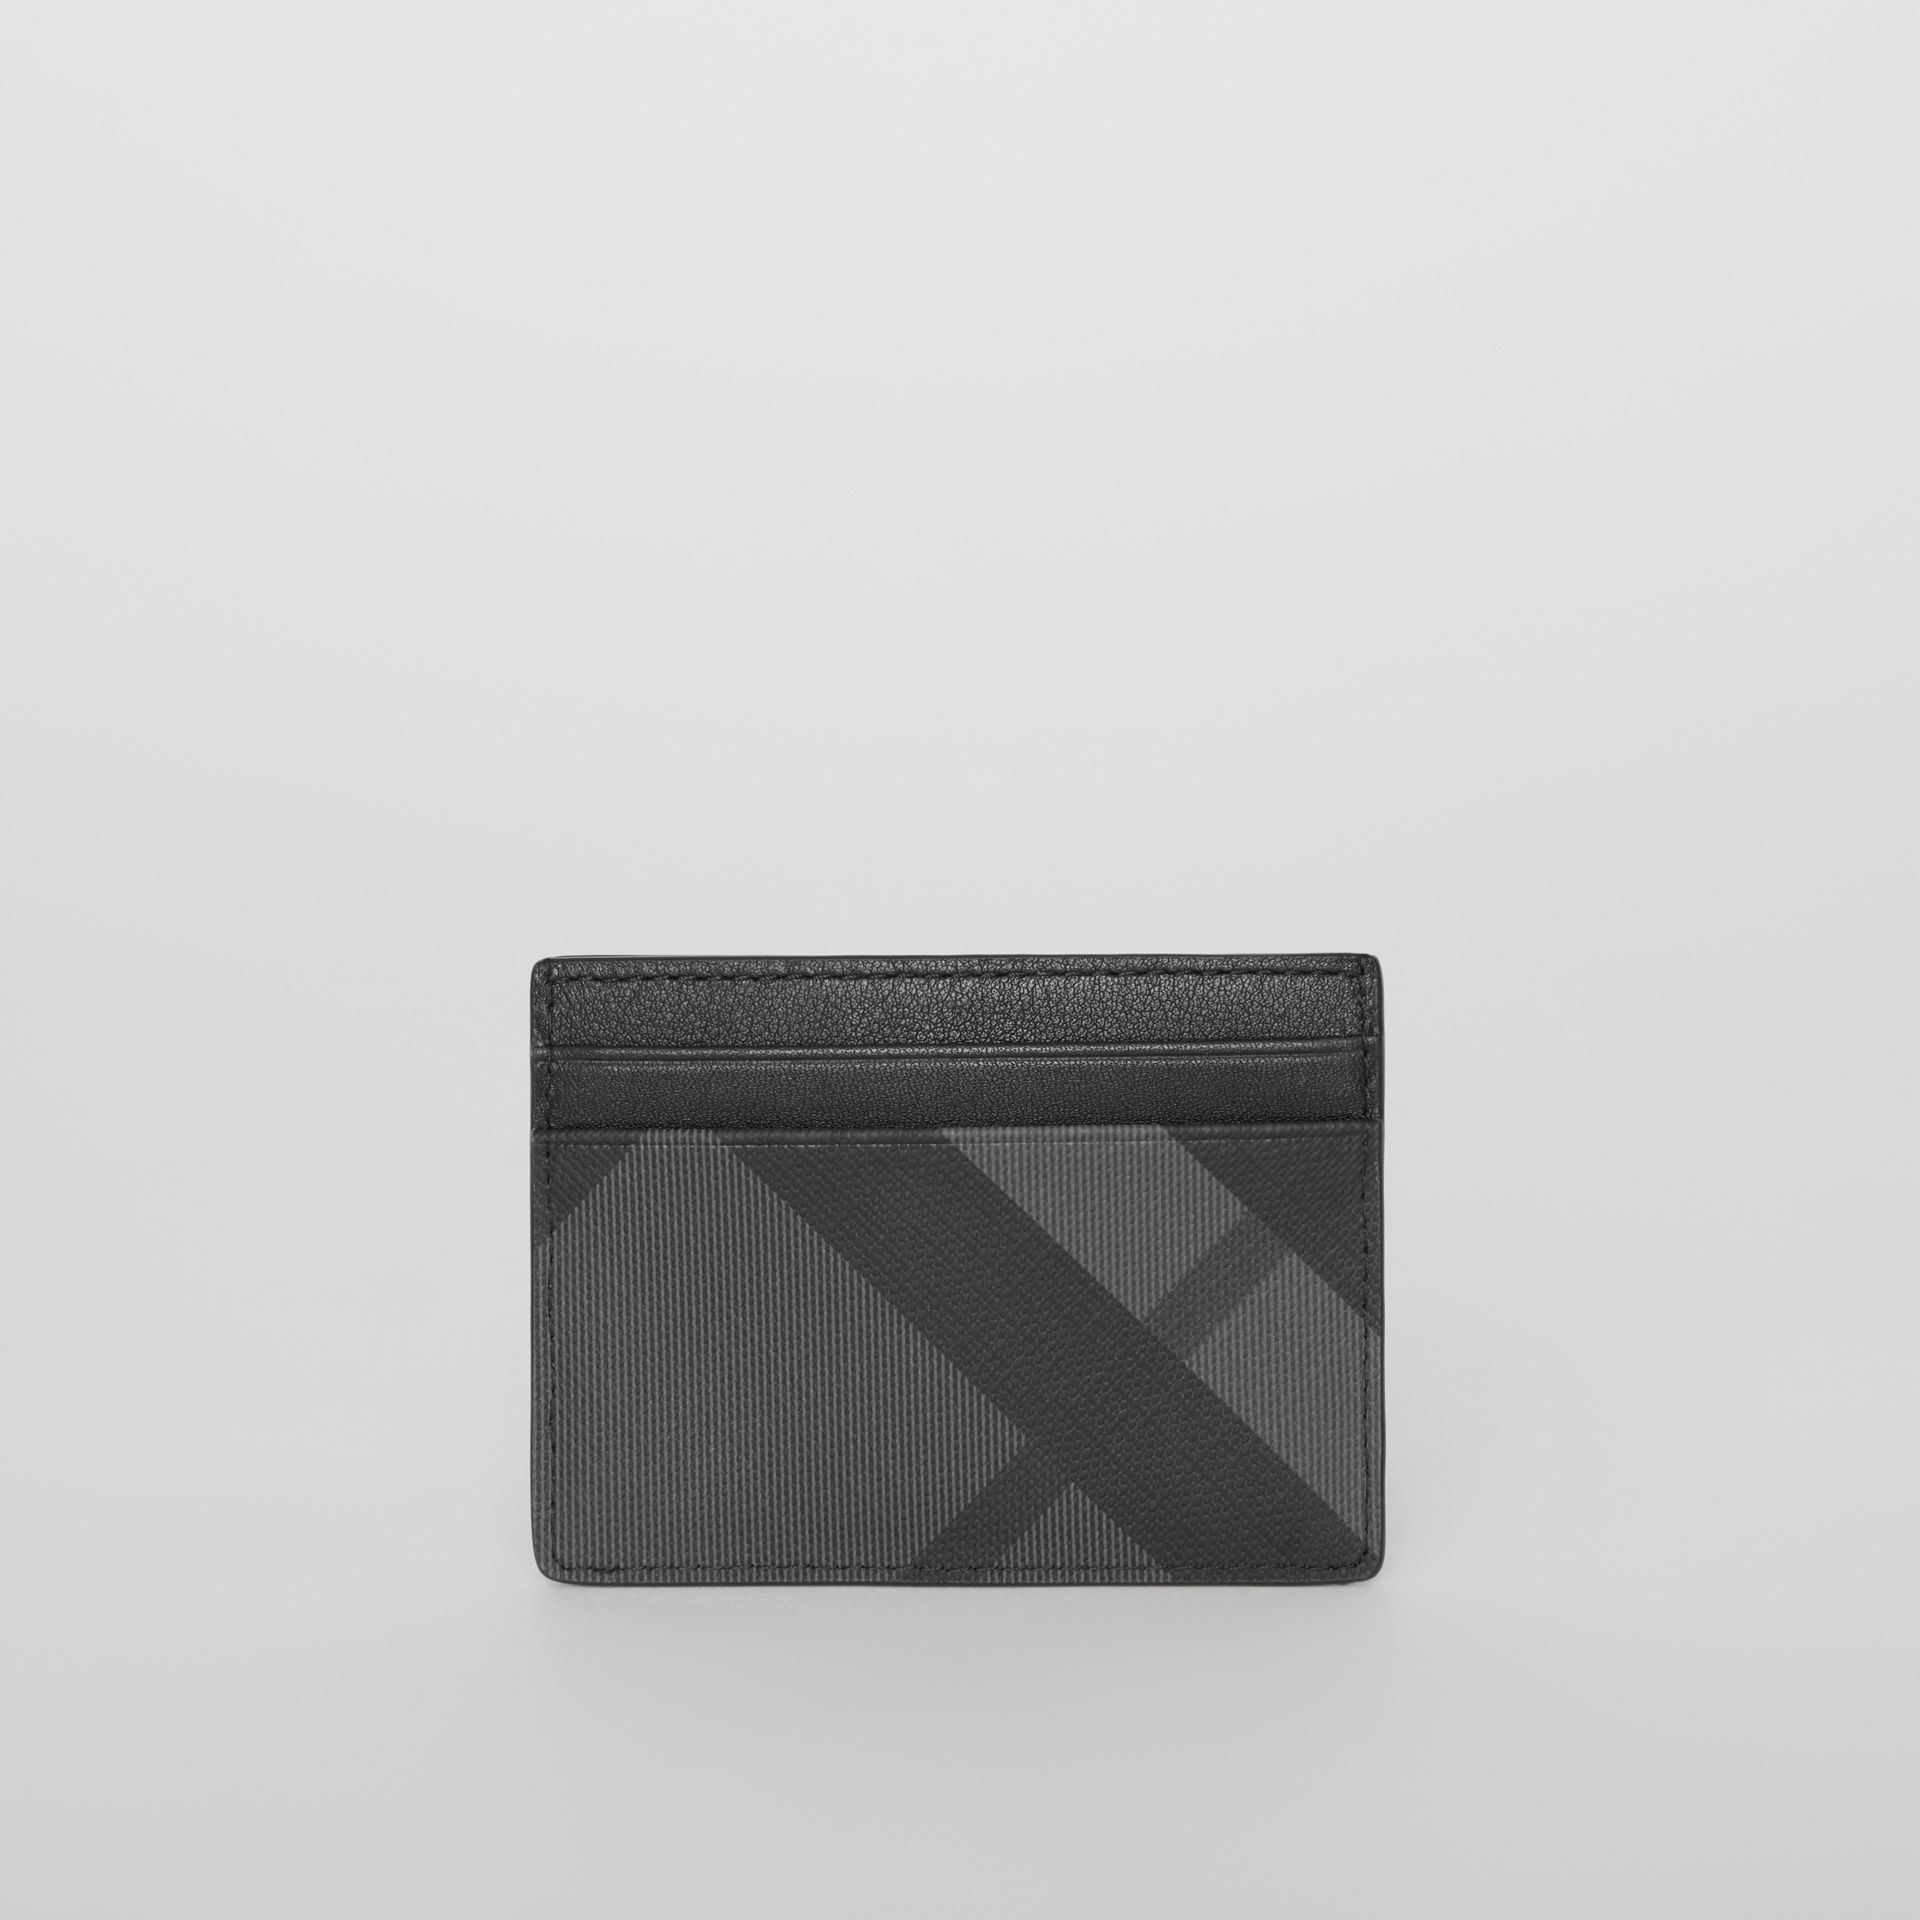 EKD London Check and Leather Card Case in Charcoal/black - Men | Burberry Singapore - gallery image 4